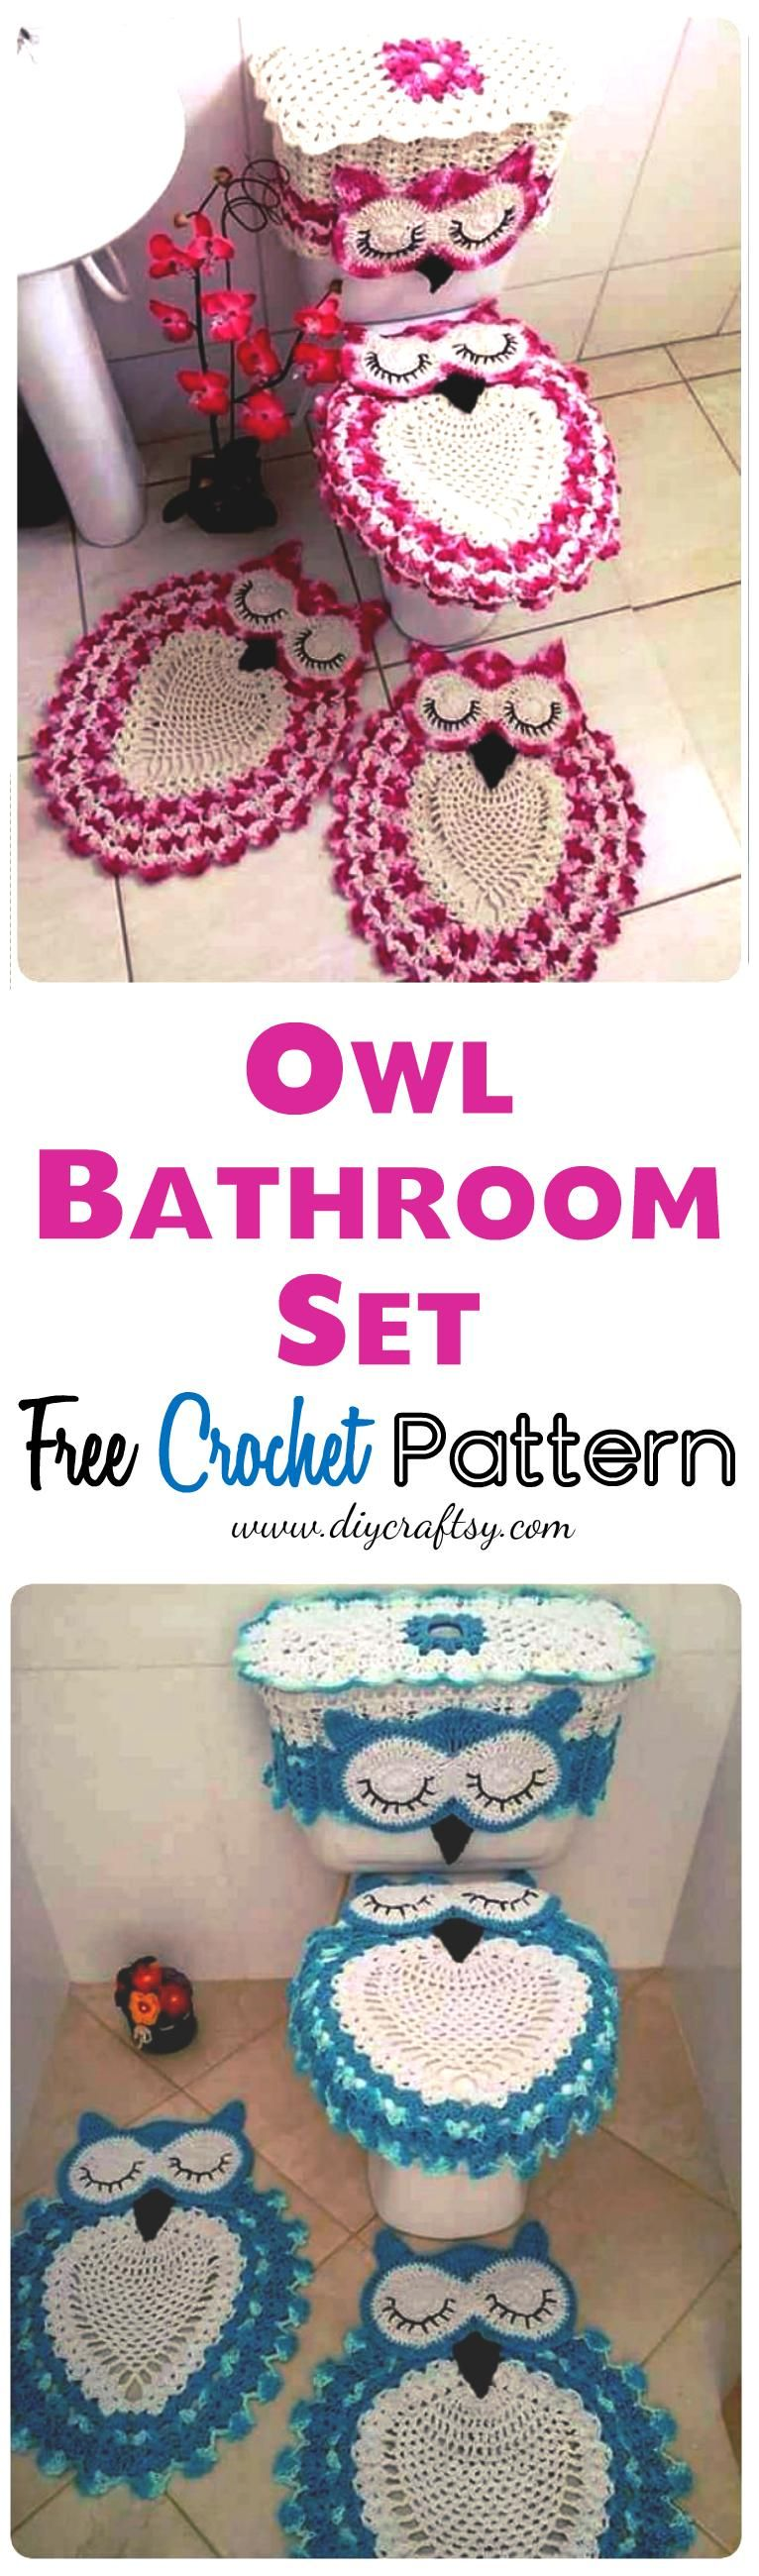 Owl bathroom set free crochet pattern owl bathroom set owl bathroom set free crochet pattern bankloansurffo Gallery